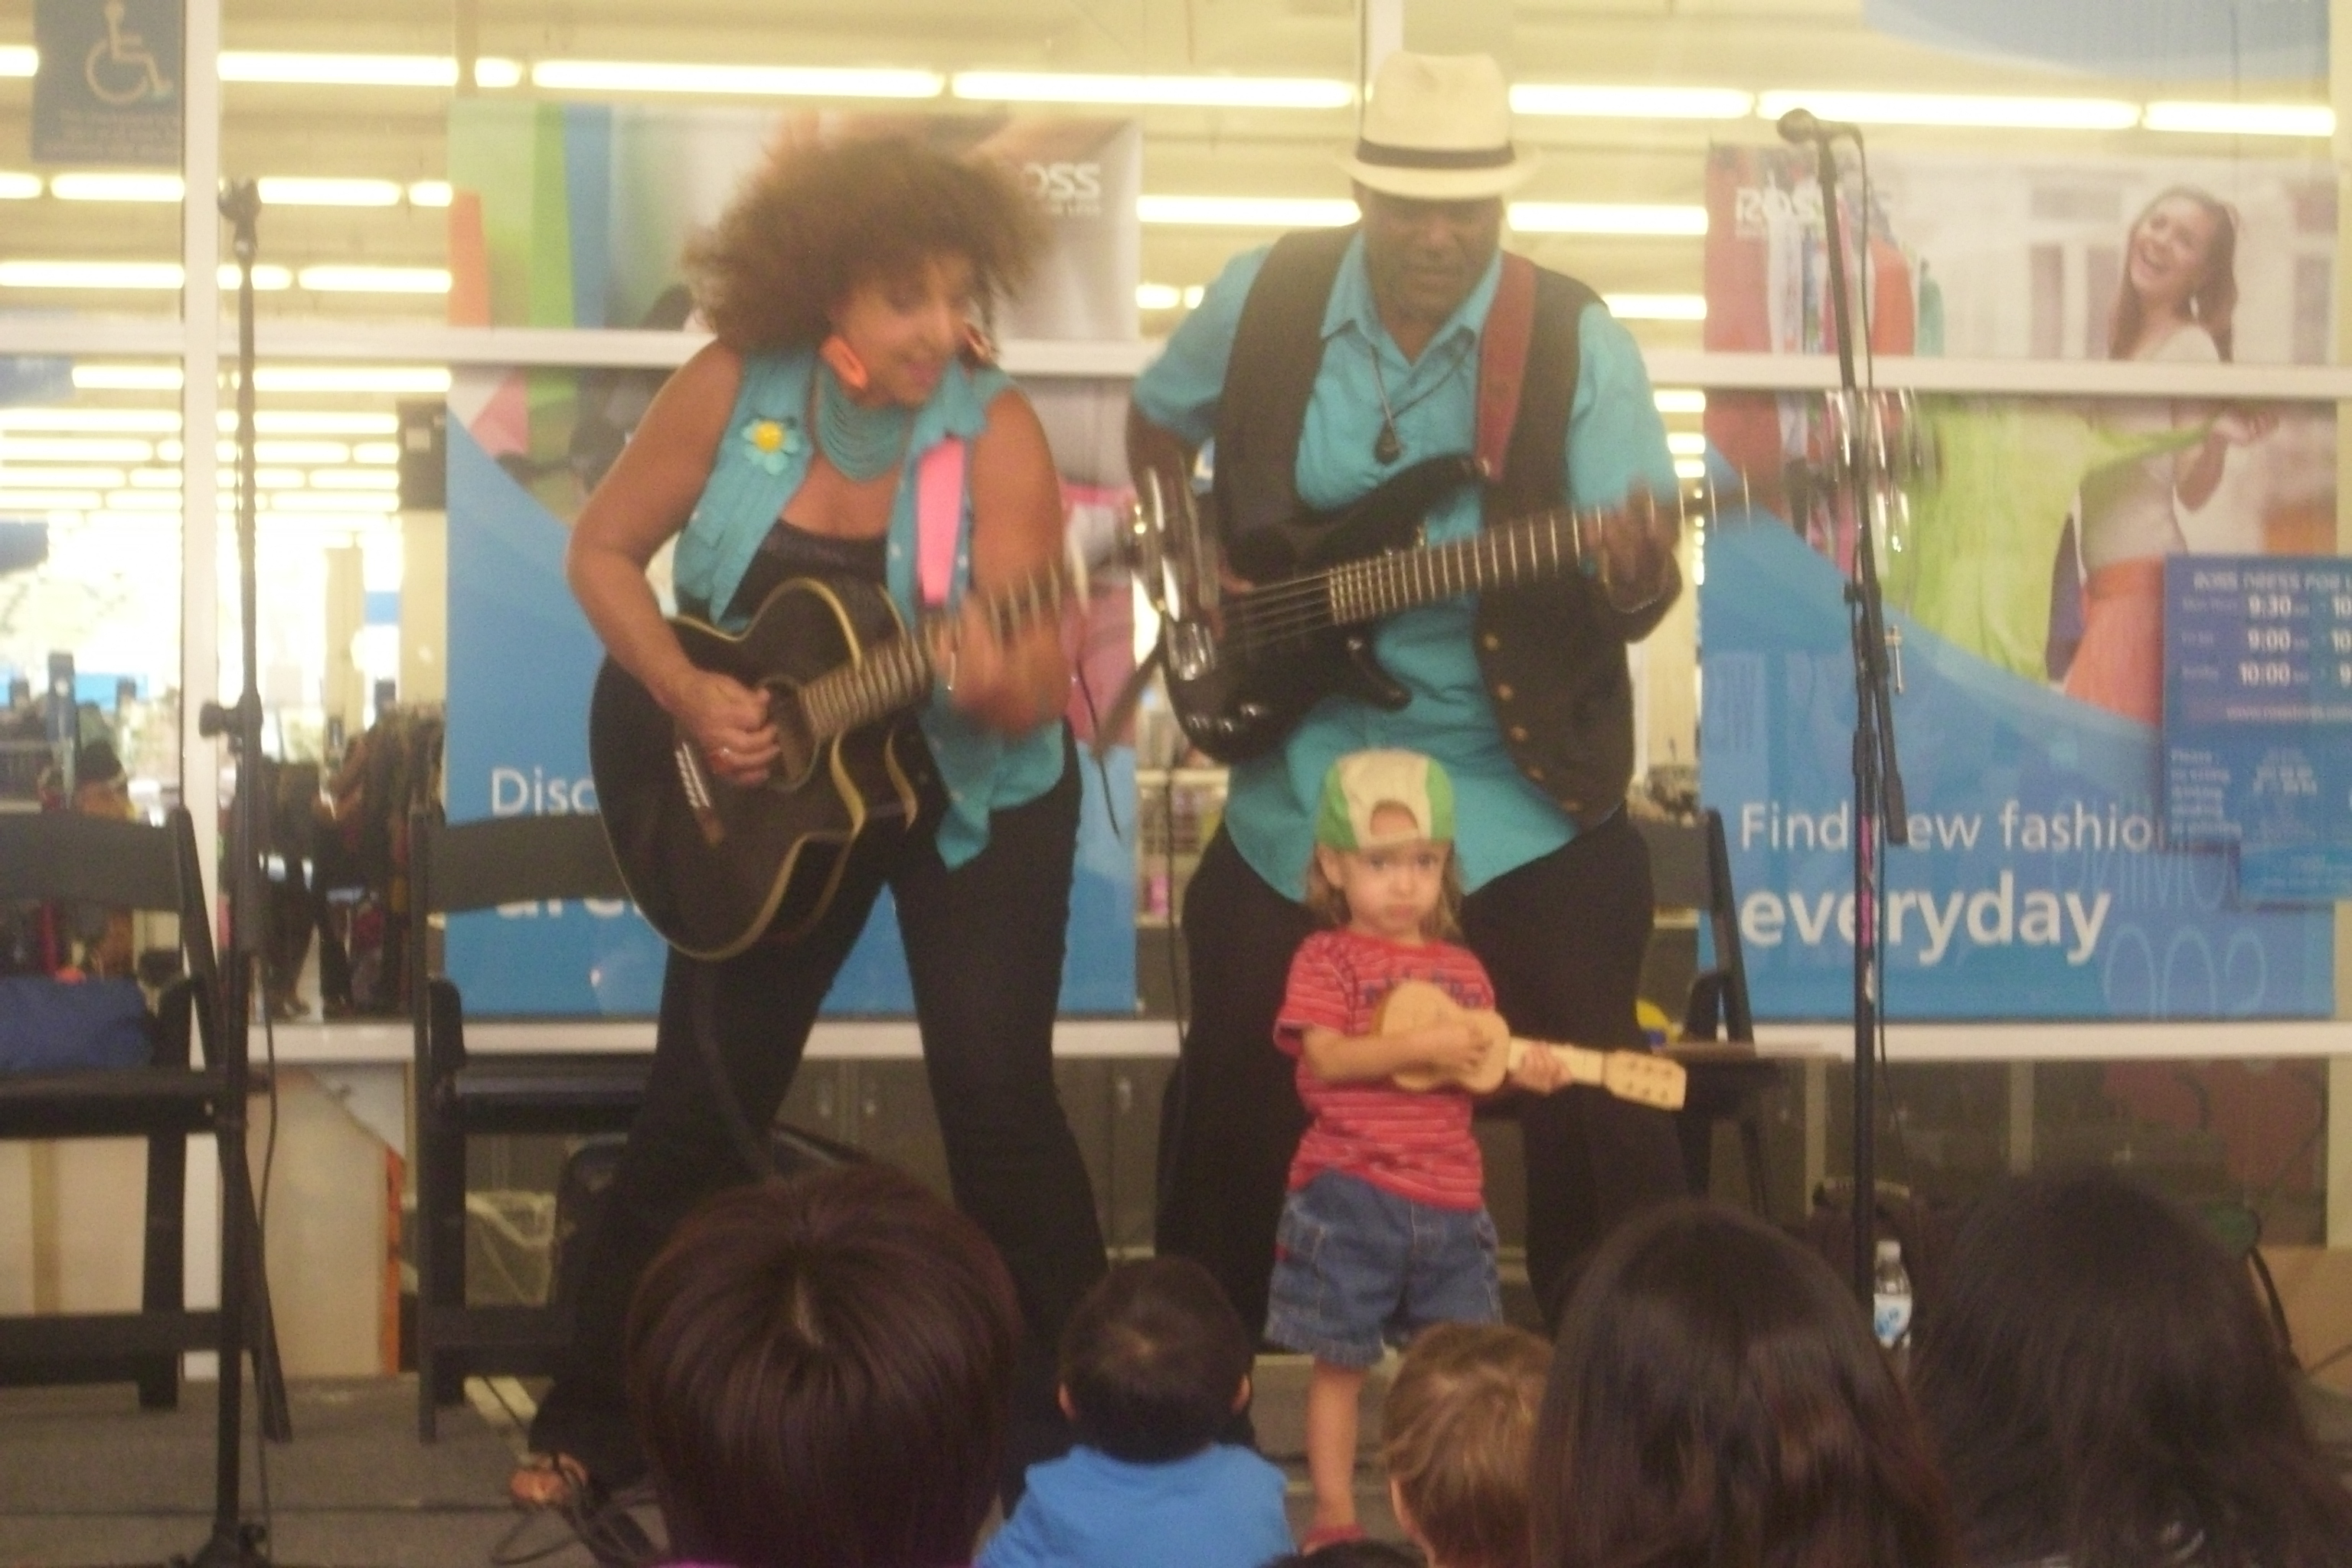 Wesgate Mall Show